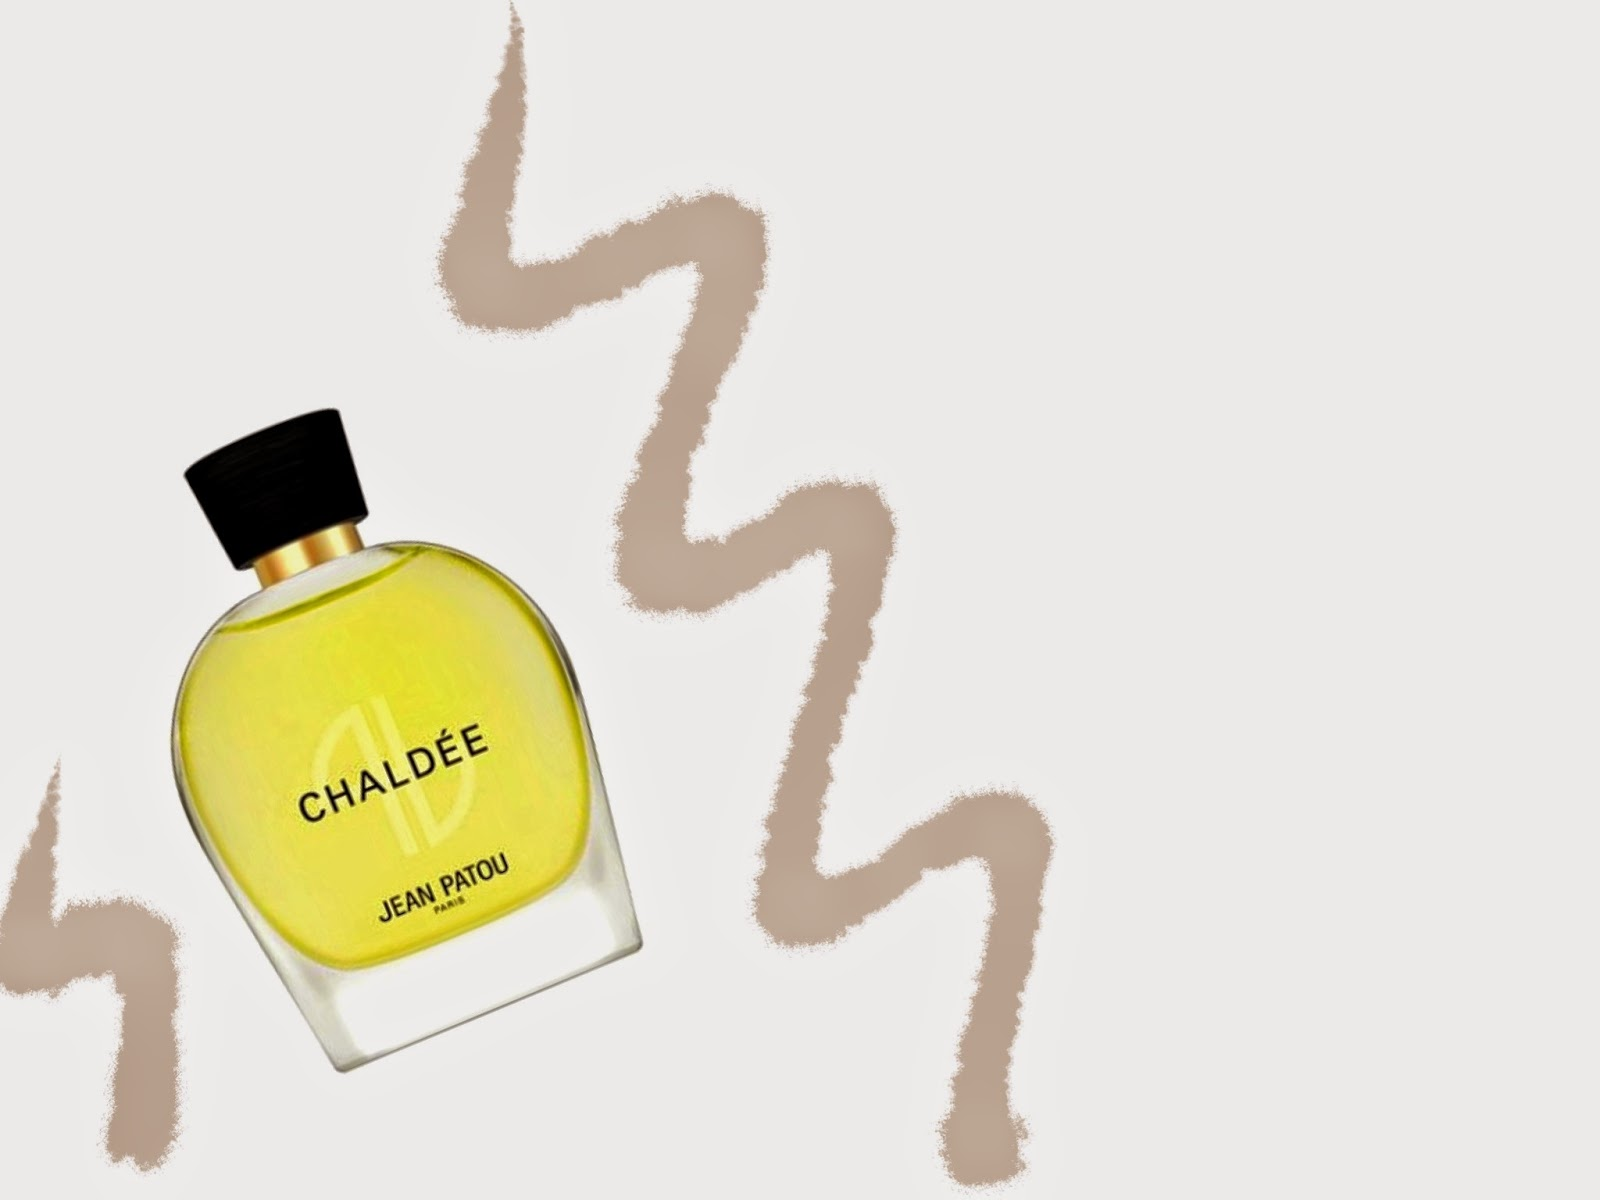 persolaise a perfume blog best perfumes of a time for chaldeacutee by henri almeras and thomas fontaine jean patou i was smitten when i first tried this and i remain smitten still retro in all the best ways